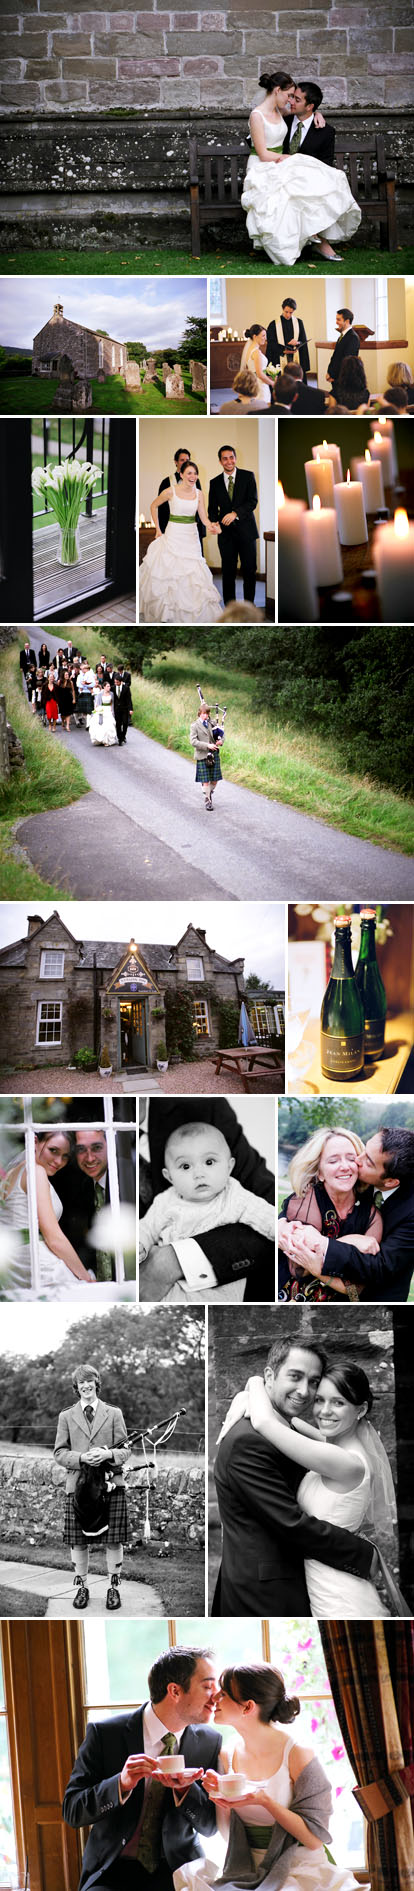 Images by Eric Rhodes, Scotland destination wedding